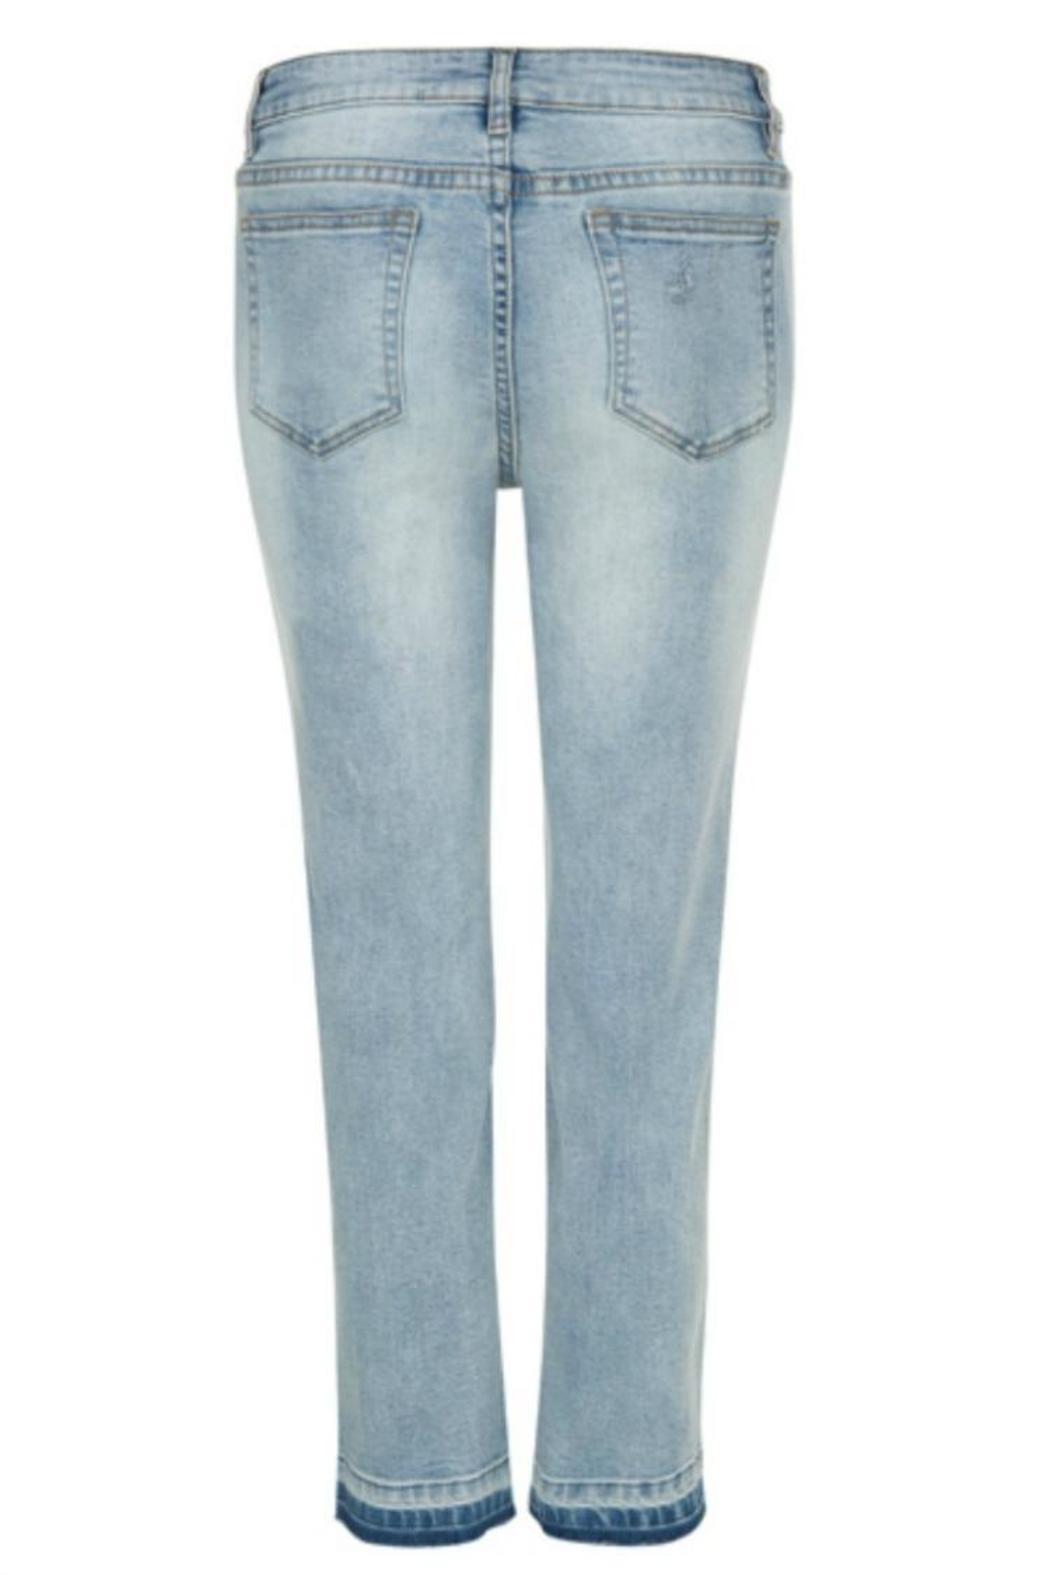 Tribal Jeans Distressed Blue Jeans - Side Cropped Image